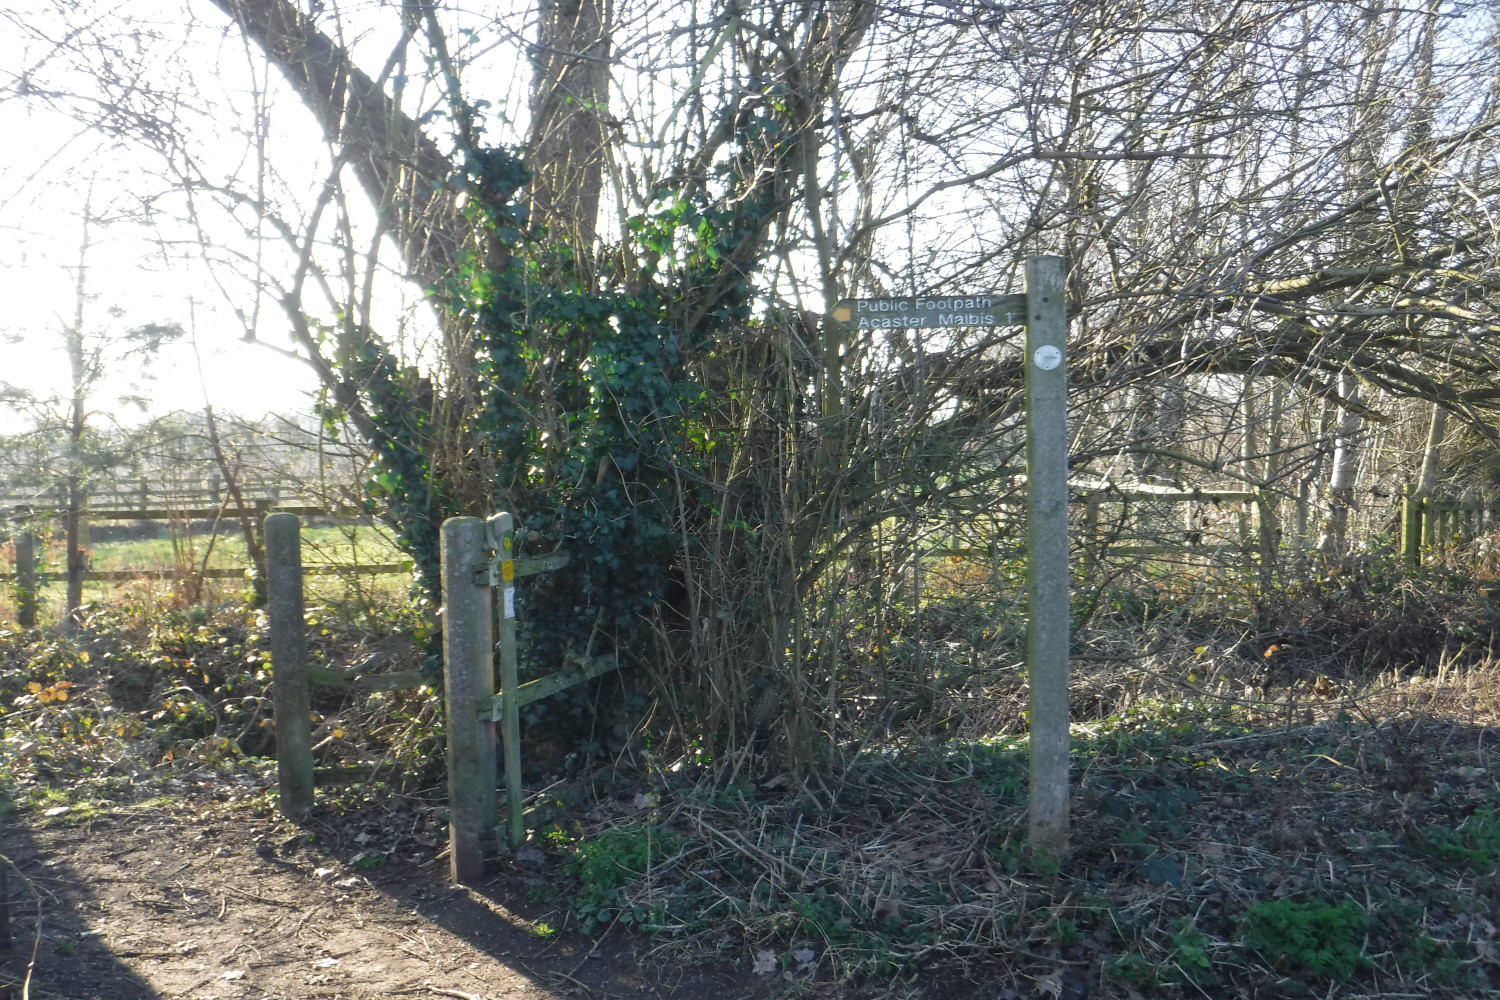 C3_Footpath to Acaster Malbis